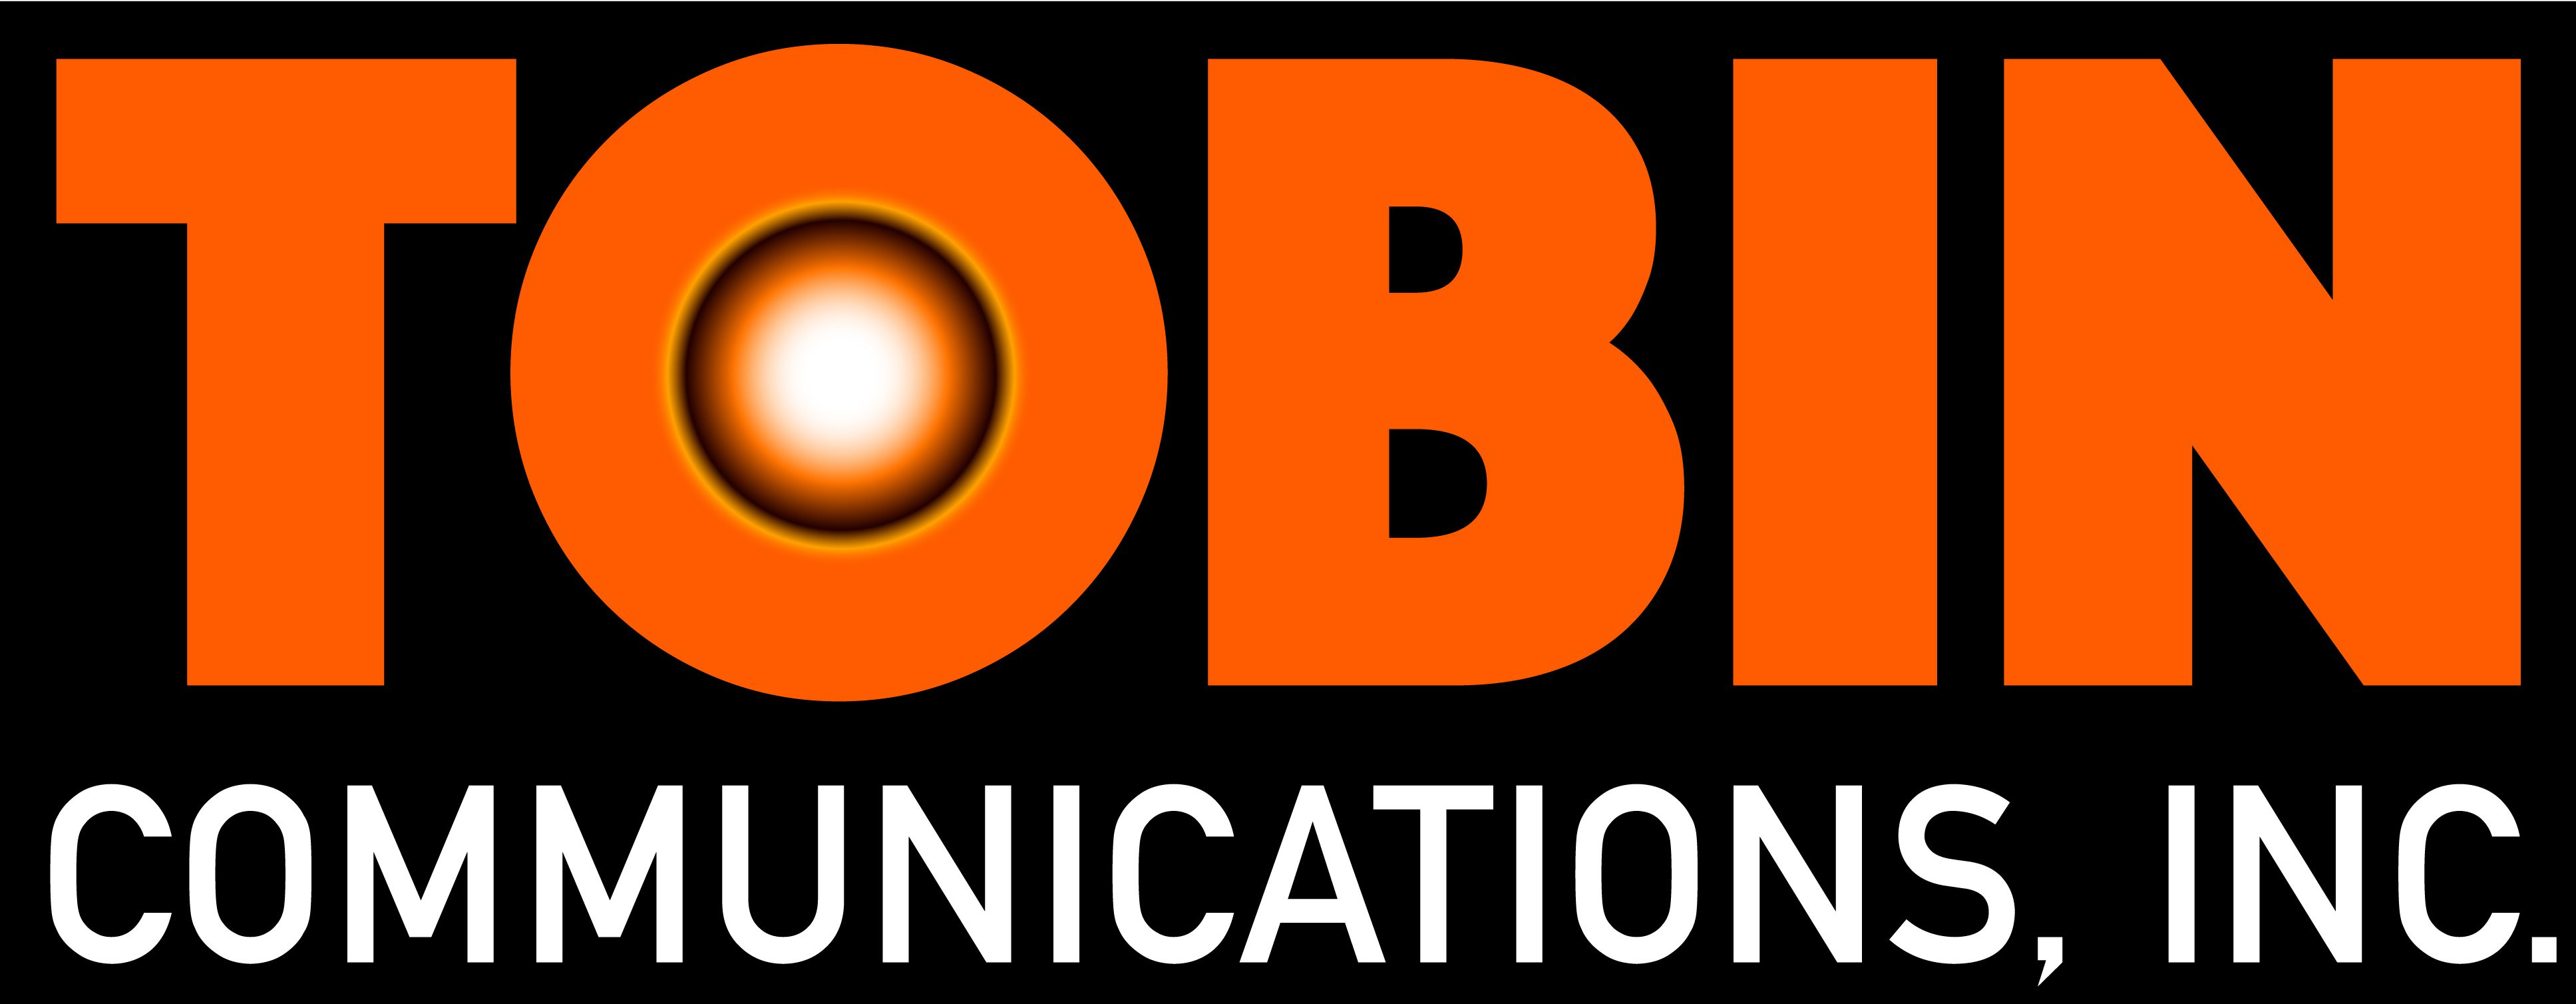 The Tobin Communications Download